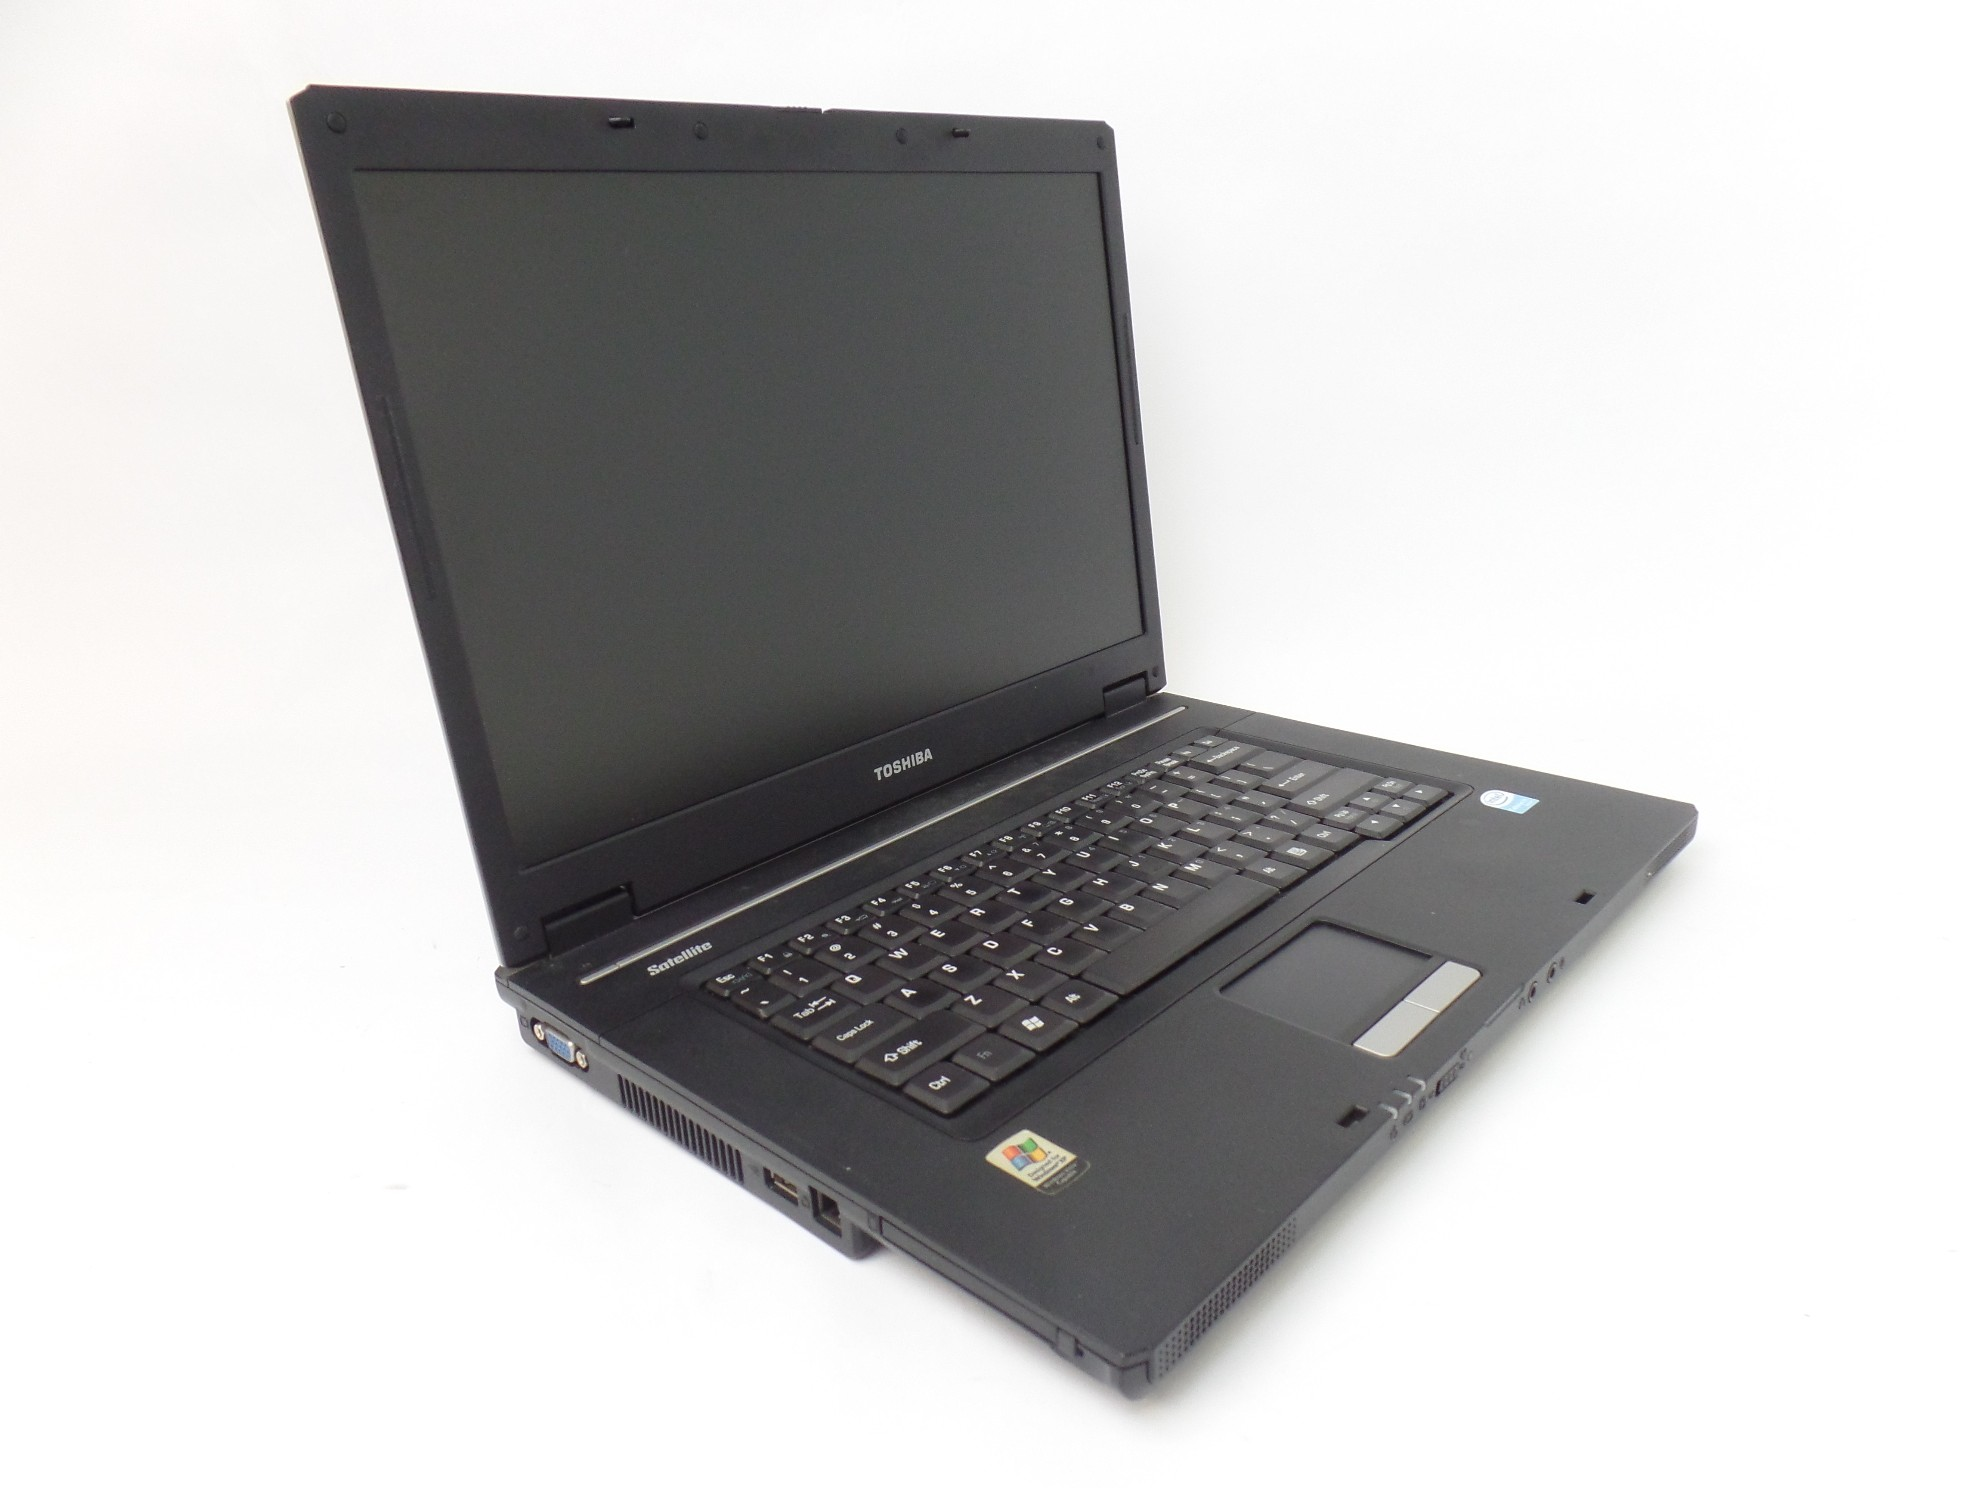 TOSHIBA SATELLITE L35-S2151 DRIVERS FOR MAC